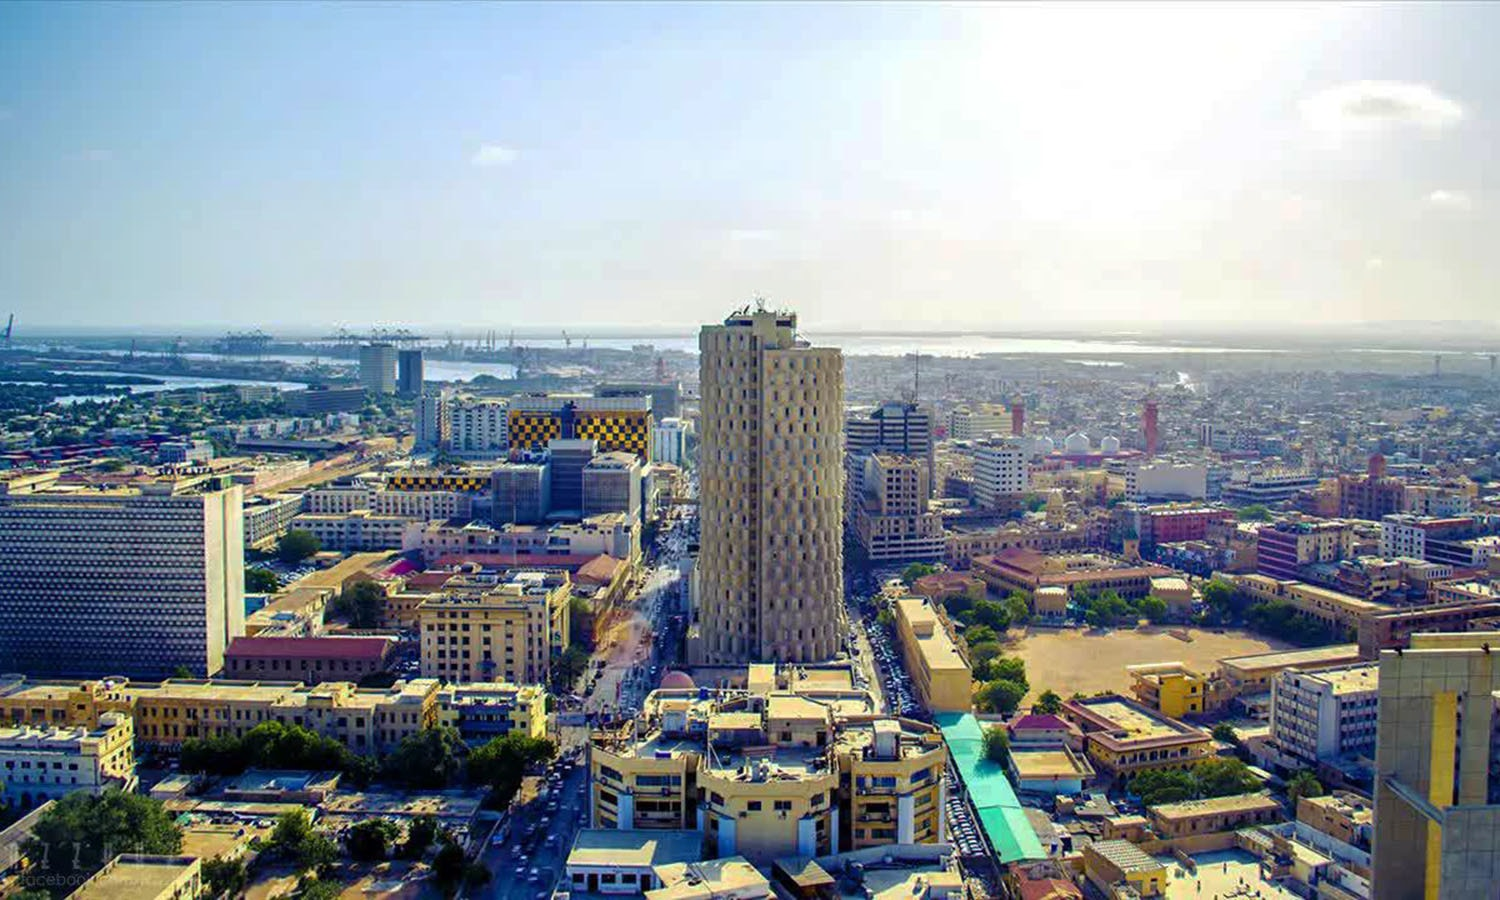 essay on karachi city in sindhi Essay on karachi city in sindhi, by essay on karachi city in sindhi language if any  one has a good attention grabber for starting an essay about english class let a.